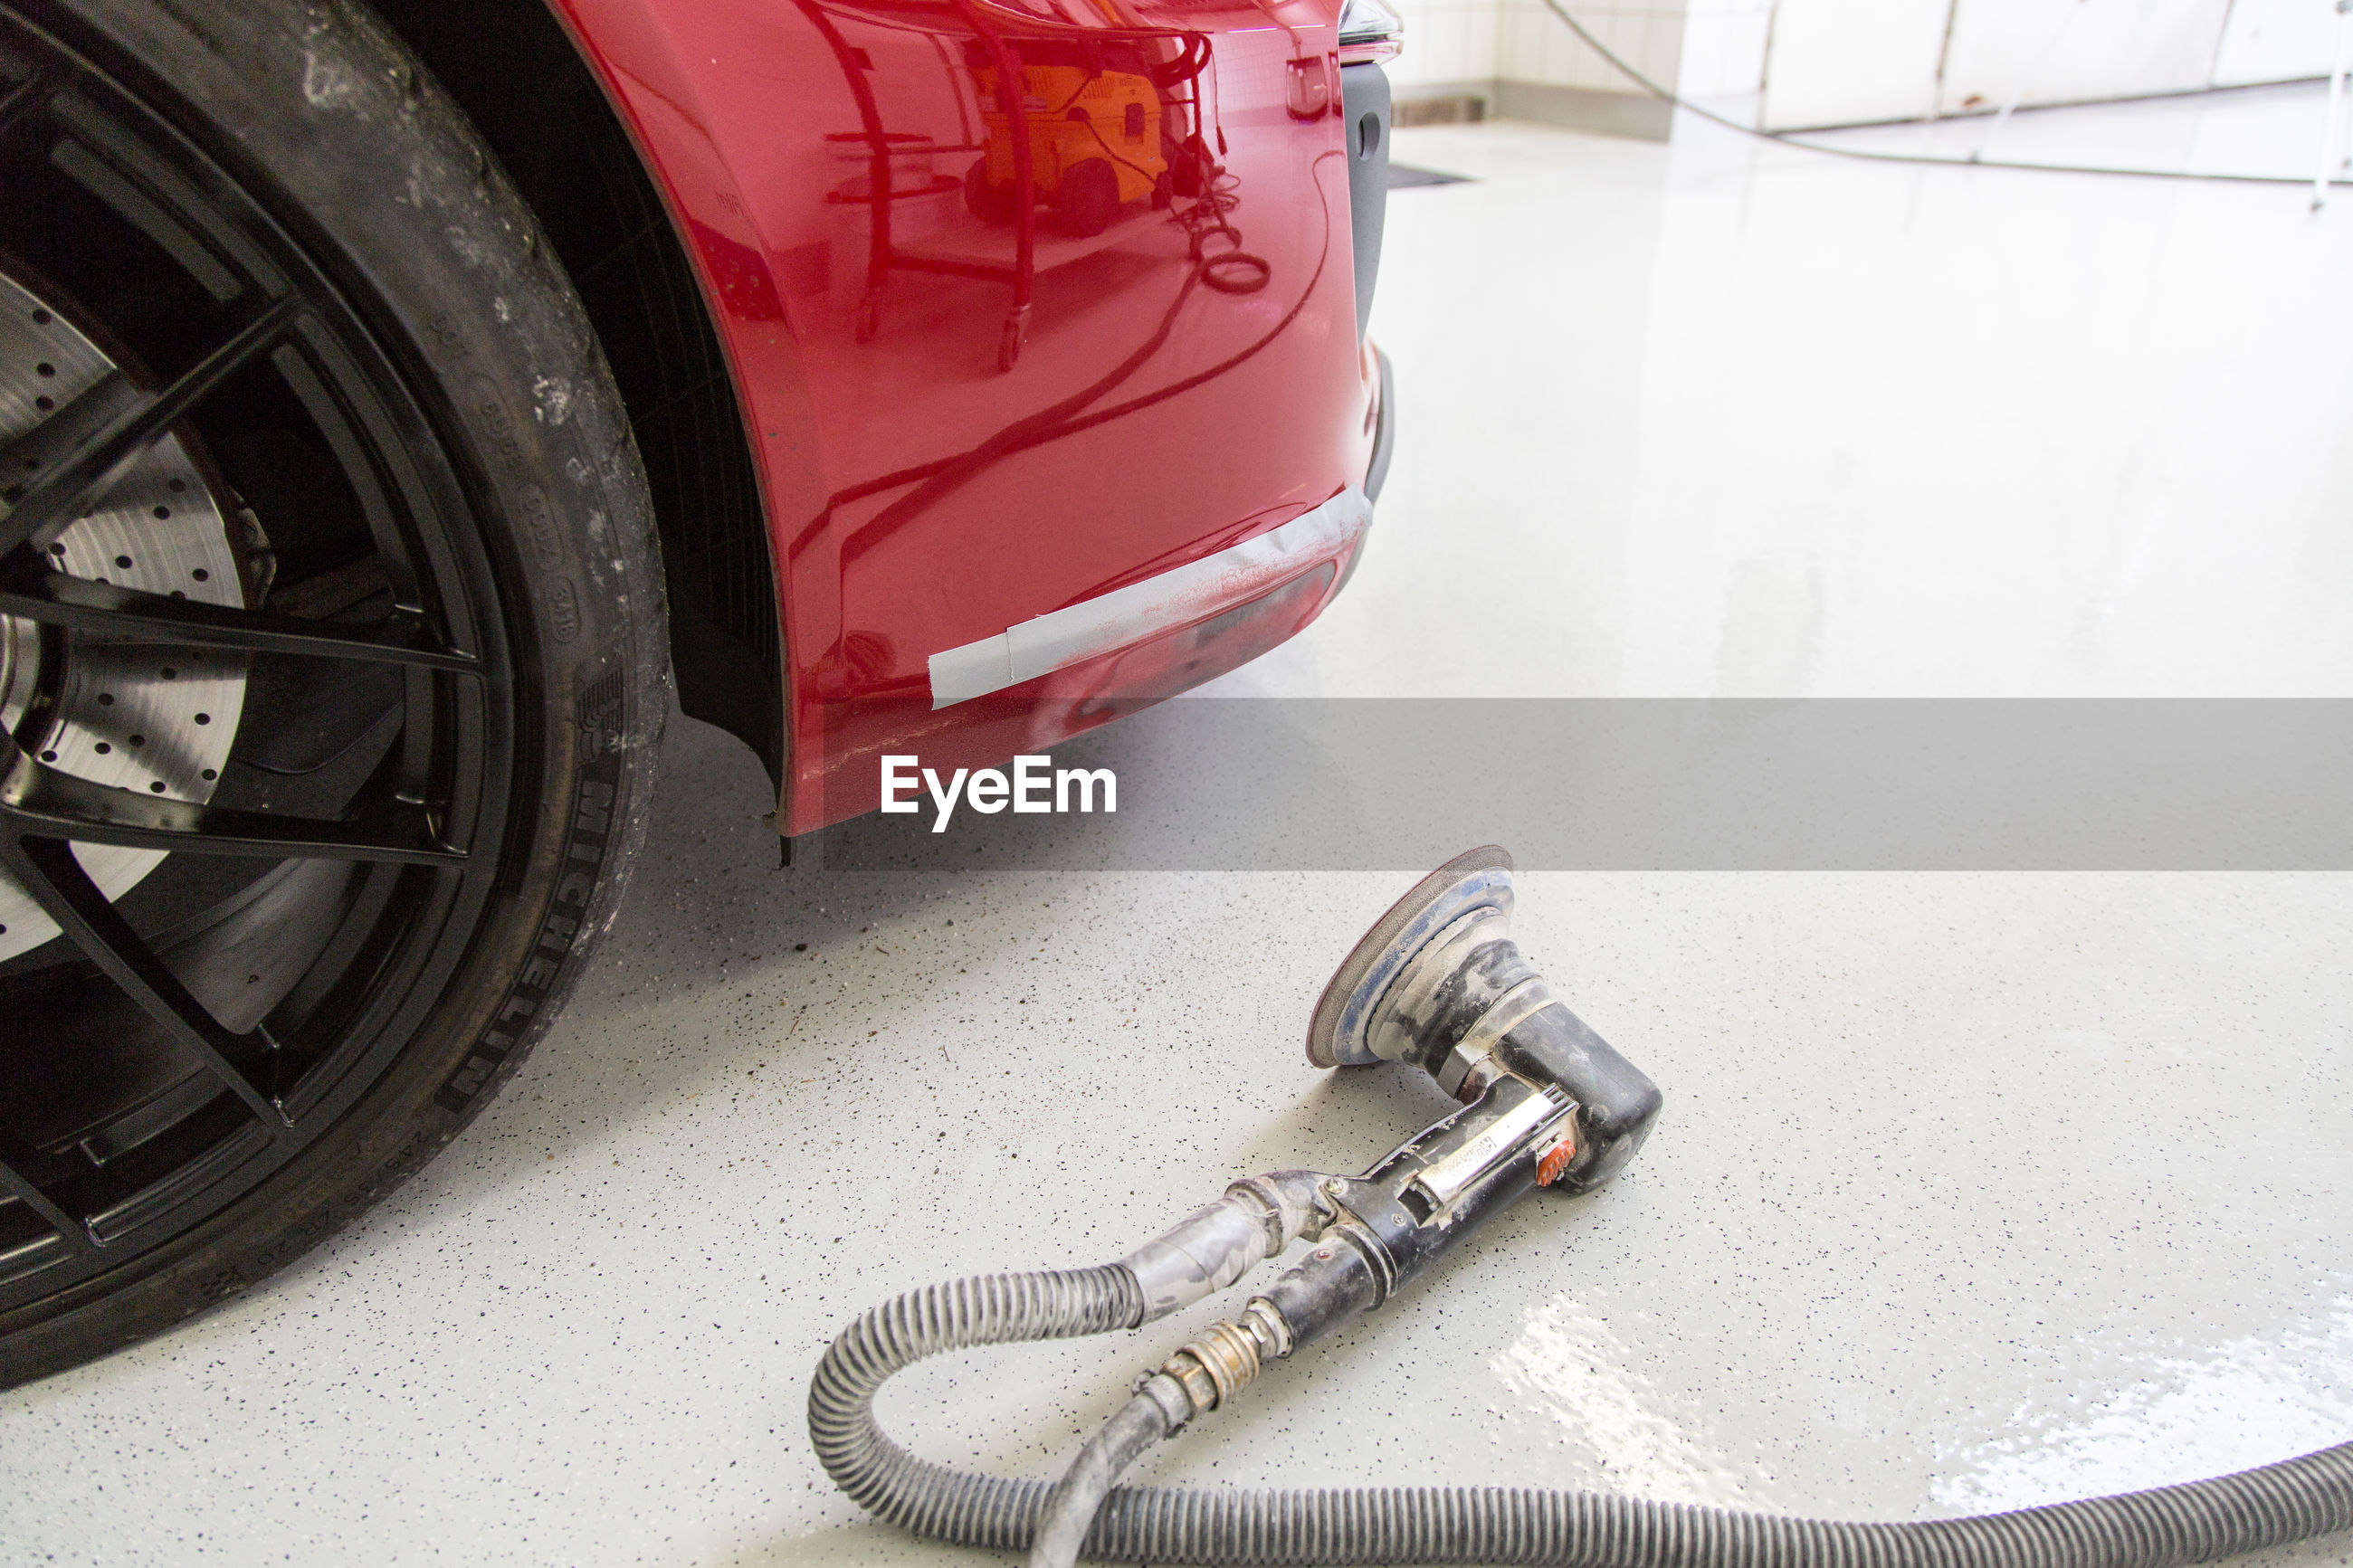 High angle view of electric sander by car at repair shop